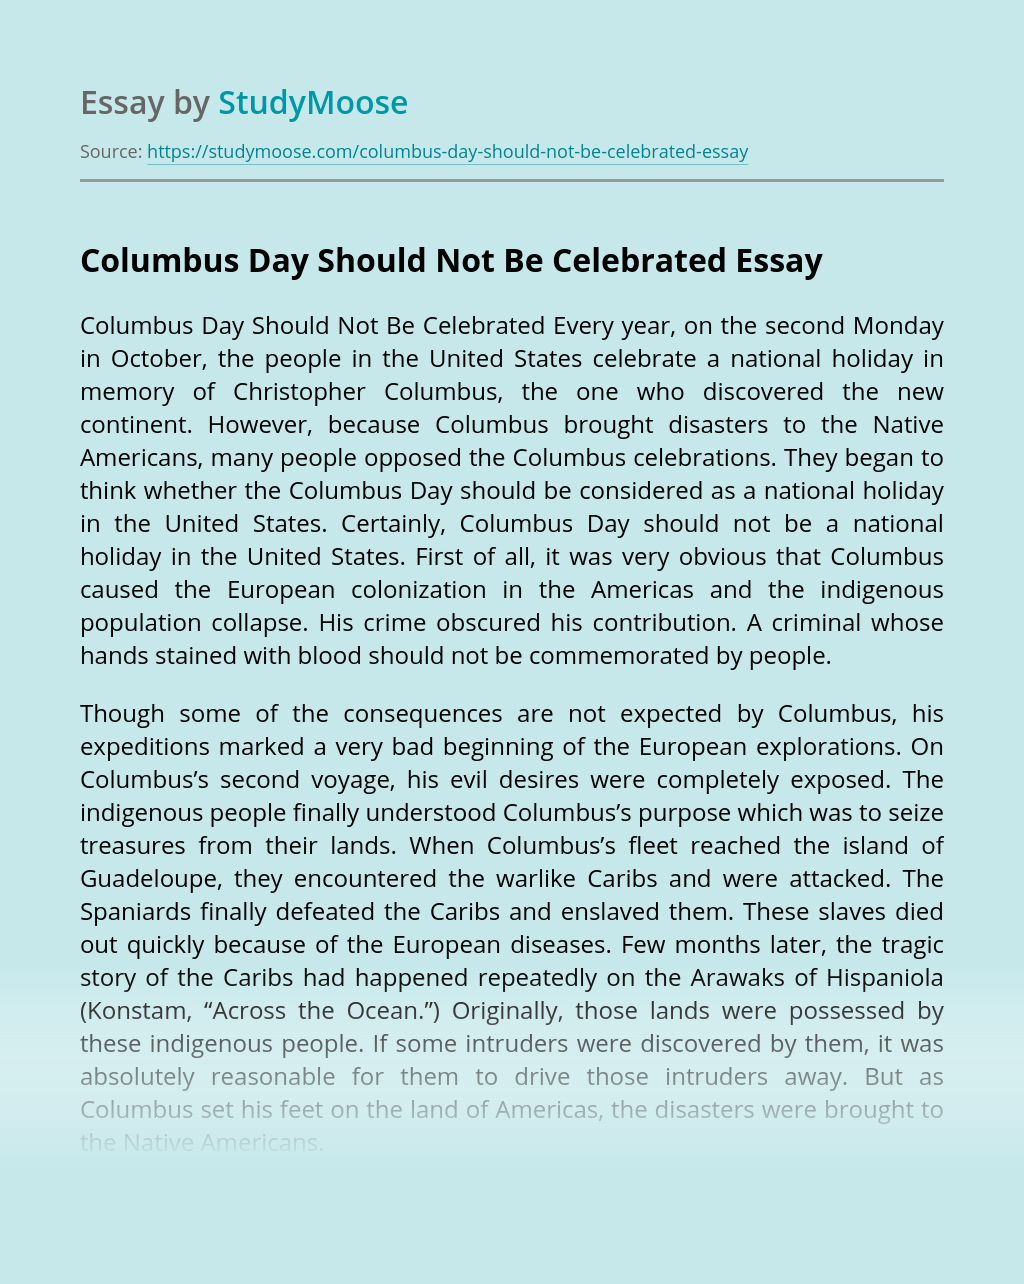 Columbus Day Should Not Be Celebrated